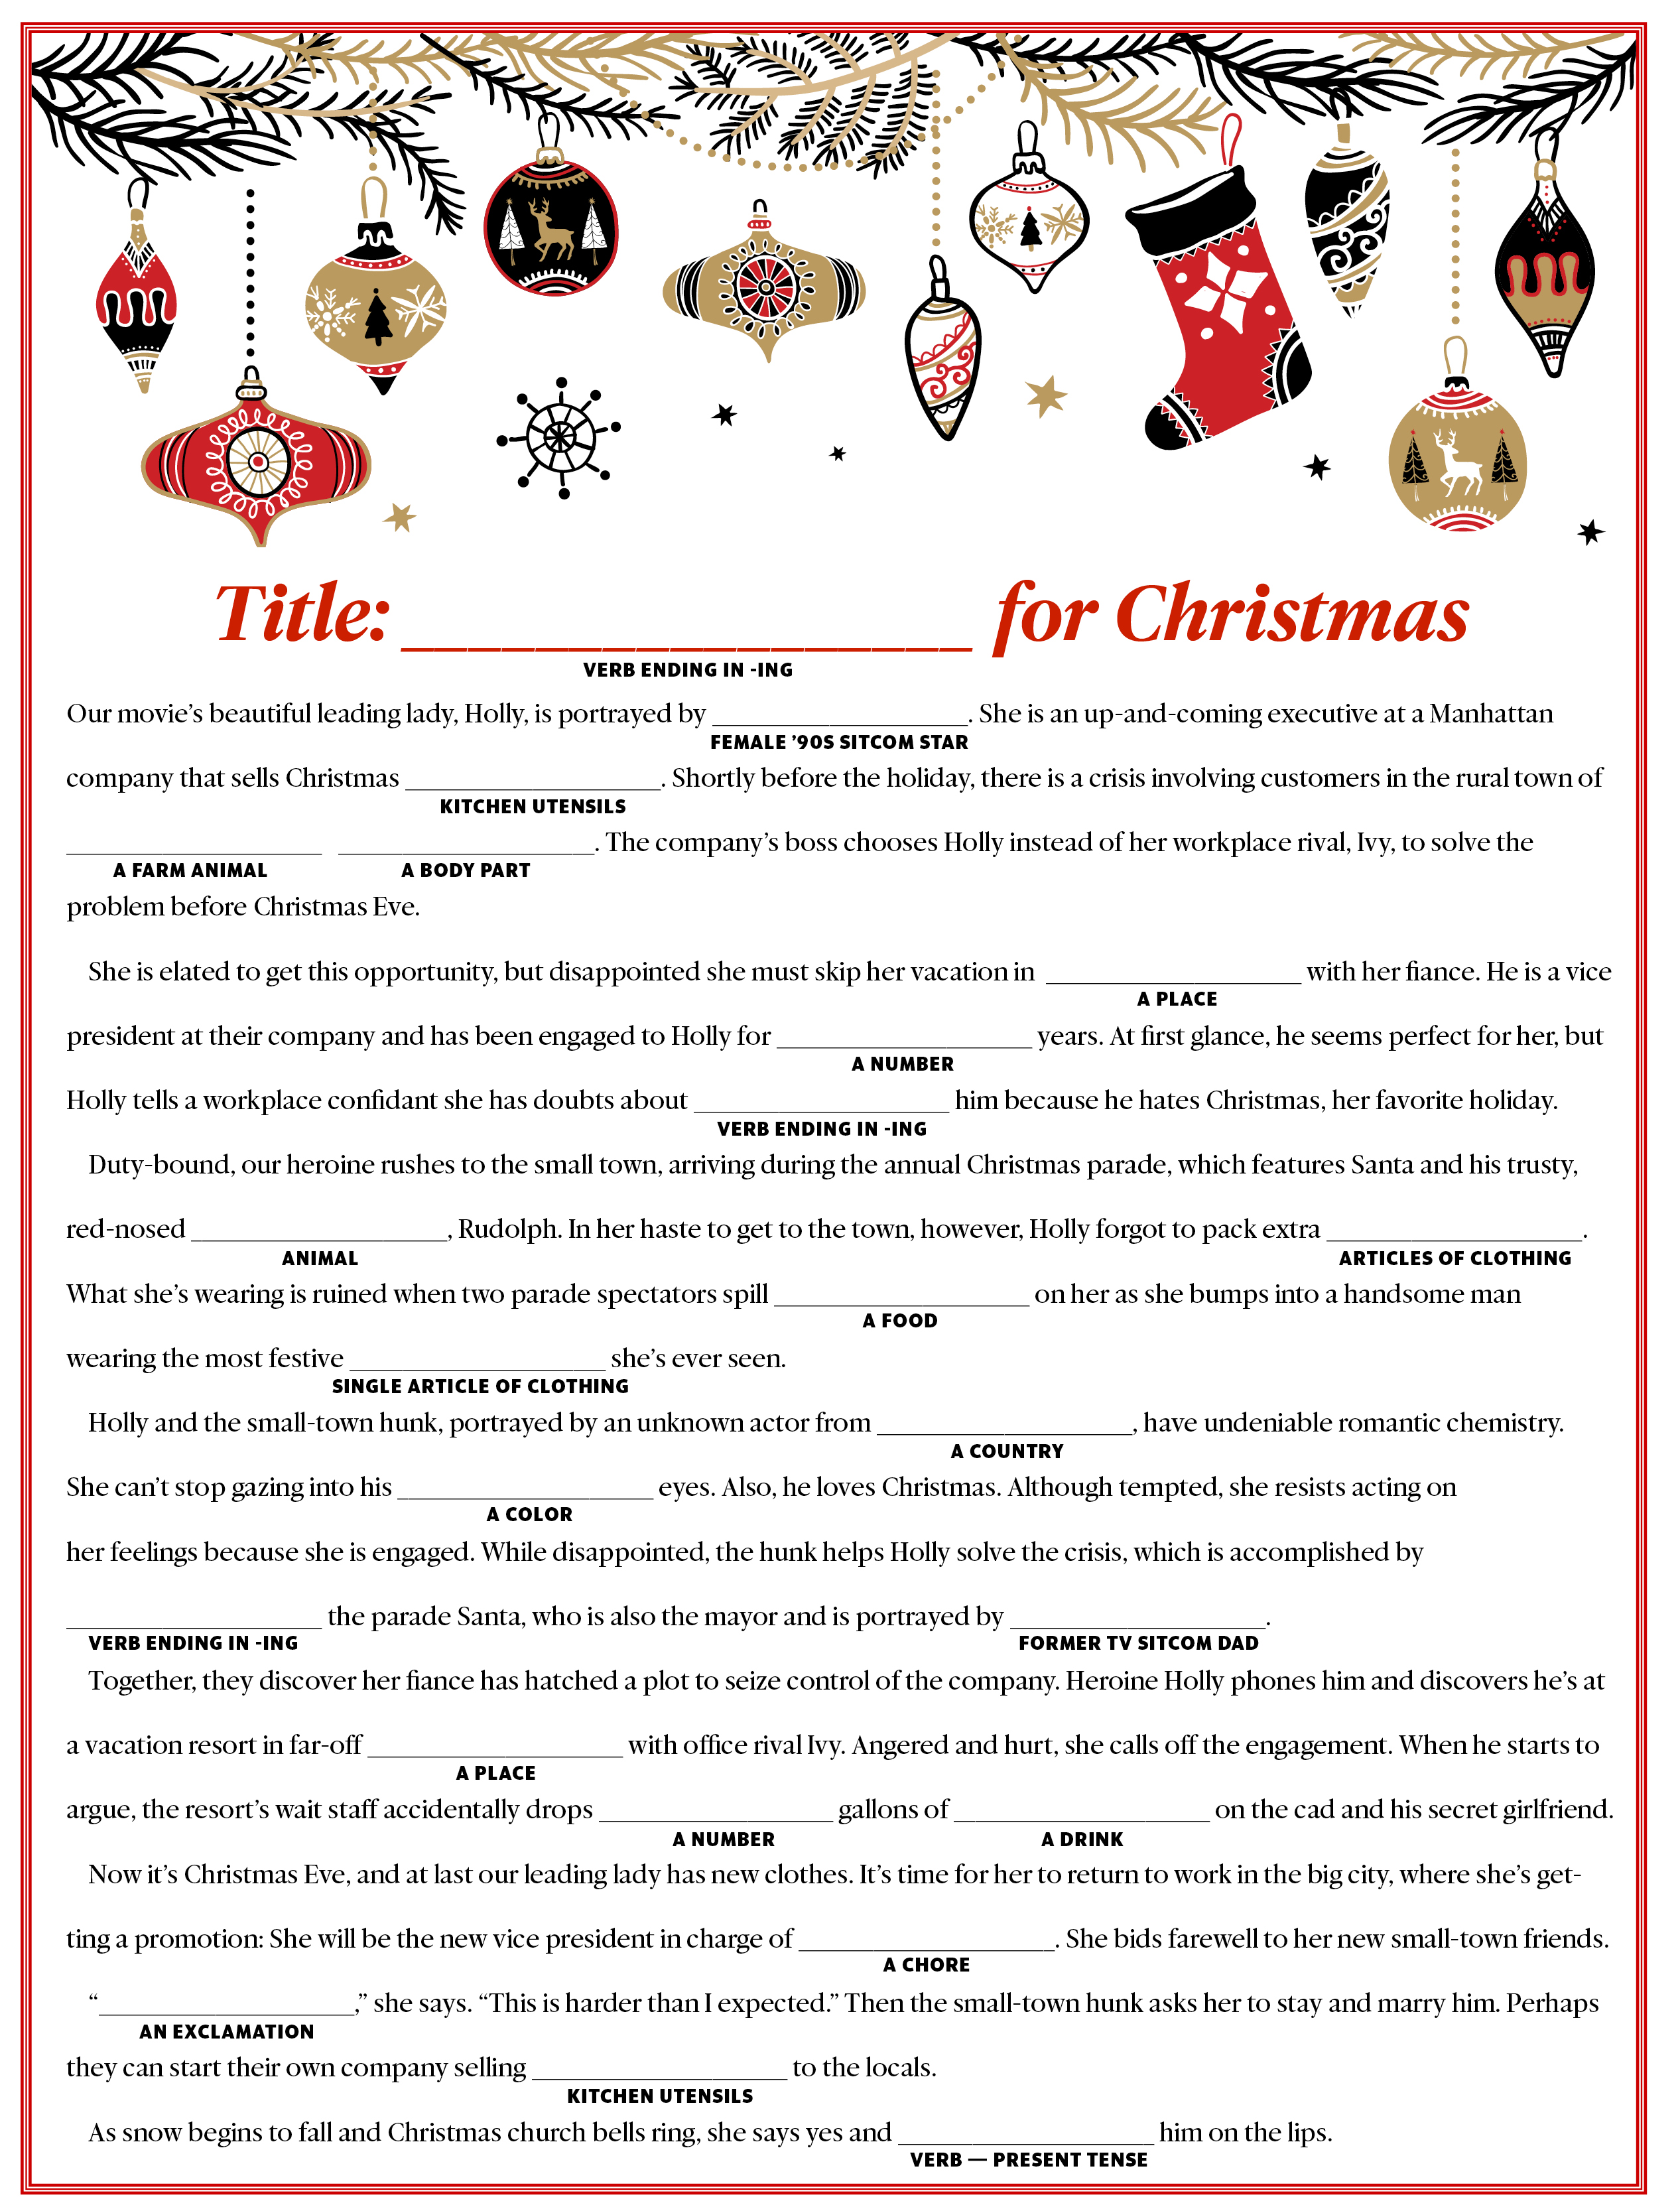 Create Your Own Holiday Movie Mad Libs Game